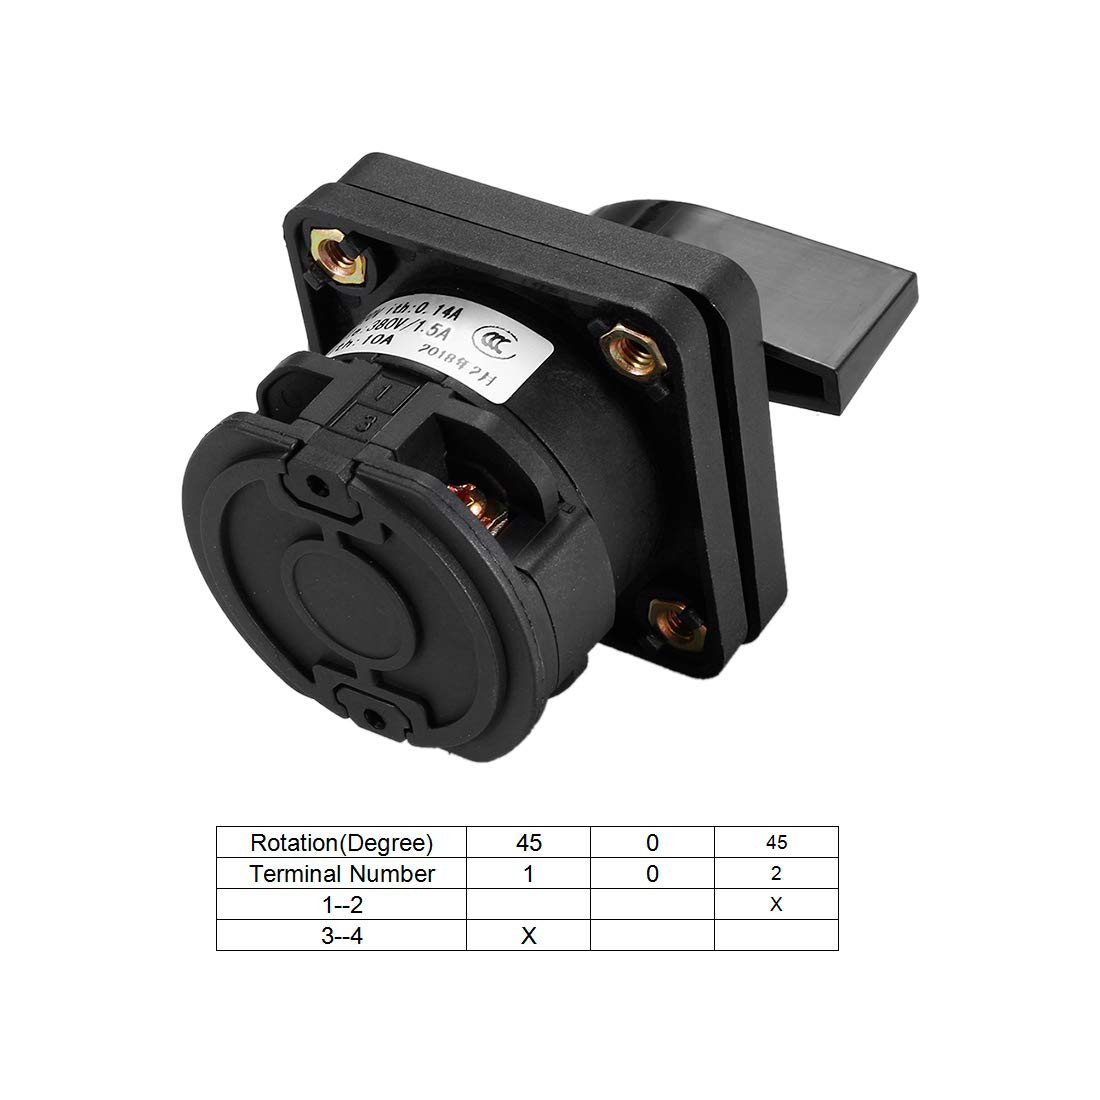 uxcell Changeover Switch 3 Position Rotary Selector Cam Switch Panel Mount 4 Terminals Latching Ui 500V Ith 10A